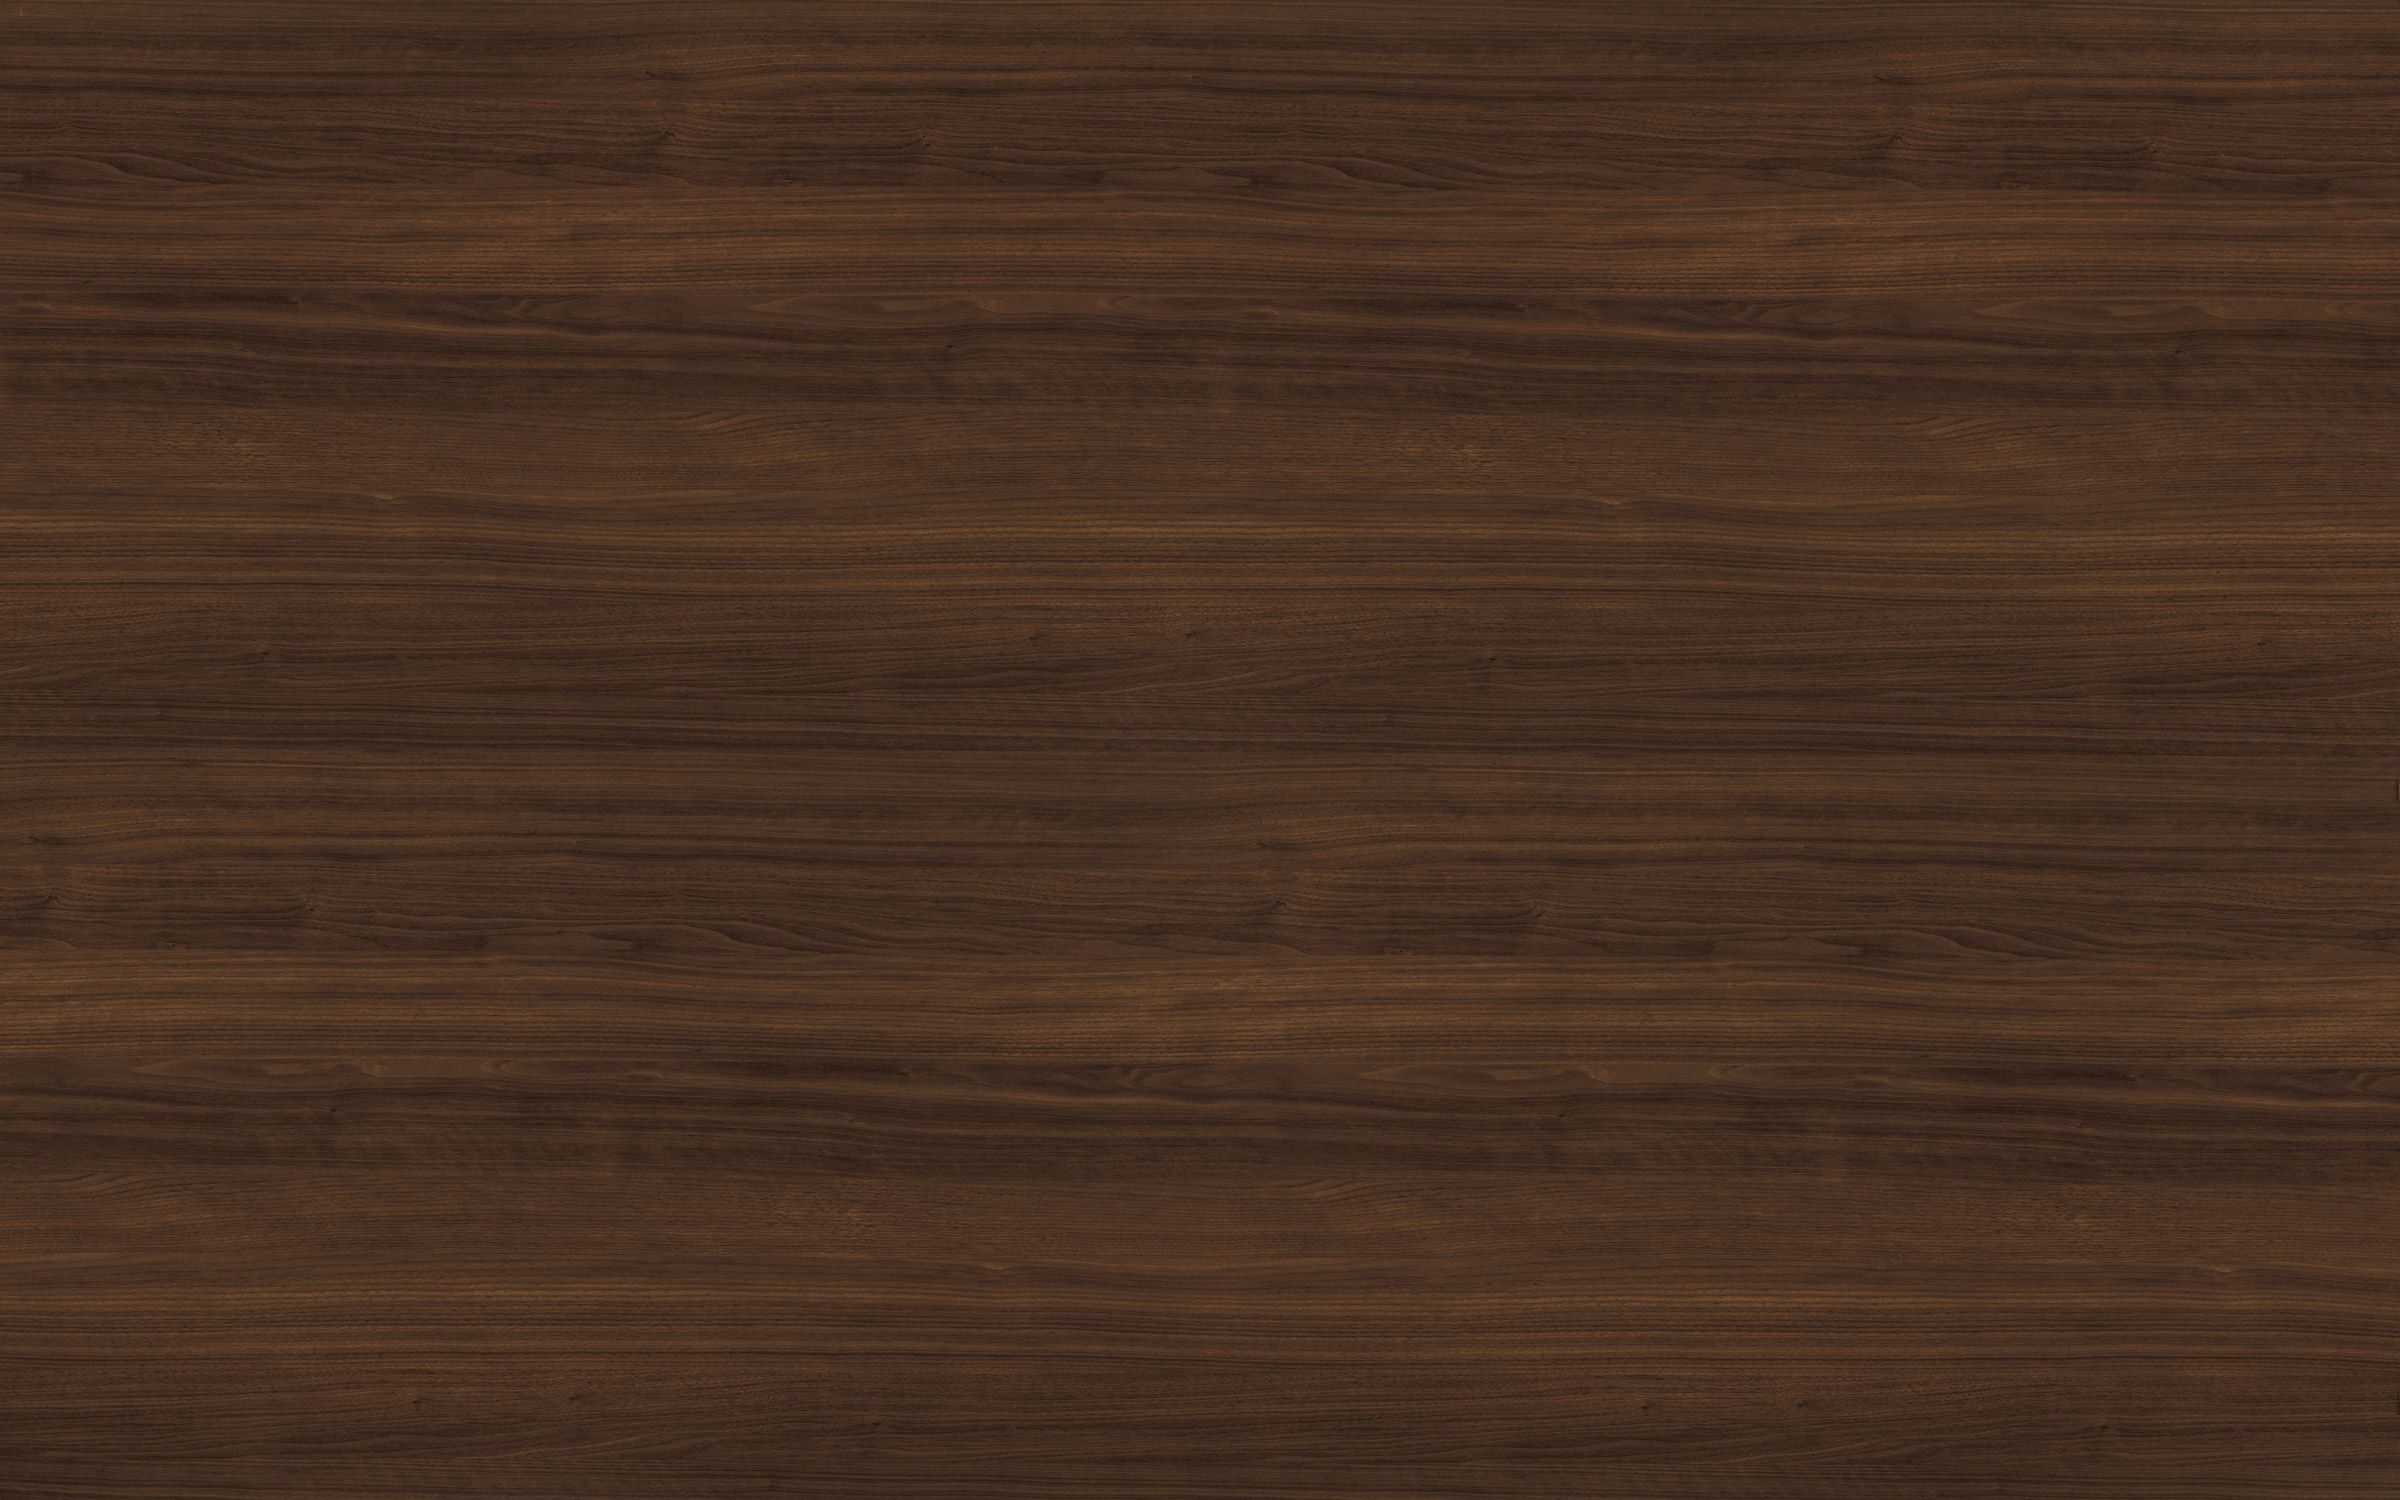 Full Screen Product Walnut Wood Texture Veneer Seamless